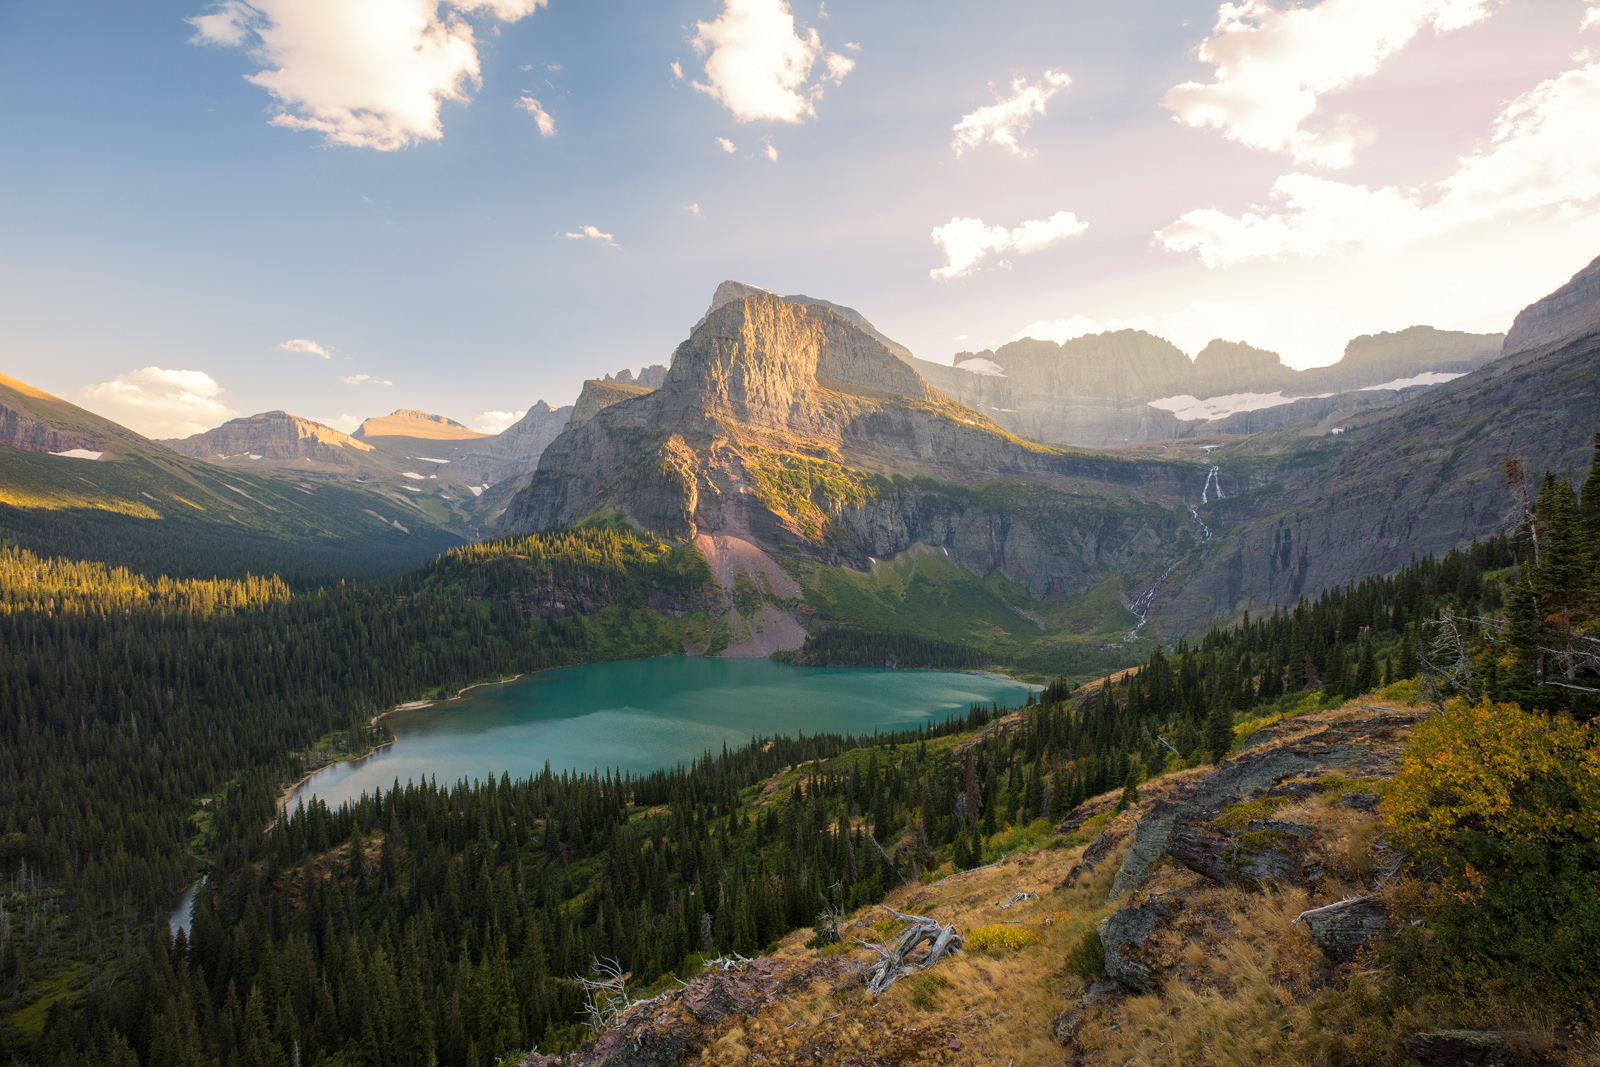 GNP, Glacier National Park, Grinnell Glacier Trail, Lower Grinnell Lake, Montana, Summer, hiking, sunset, photo